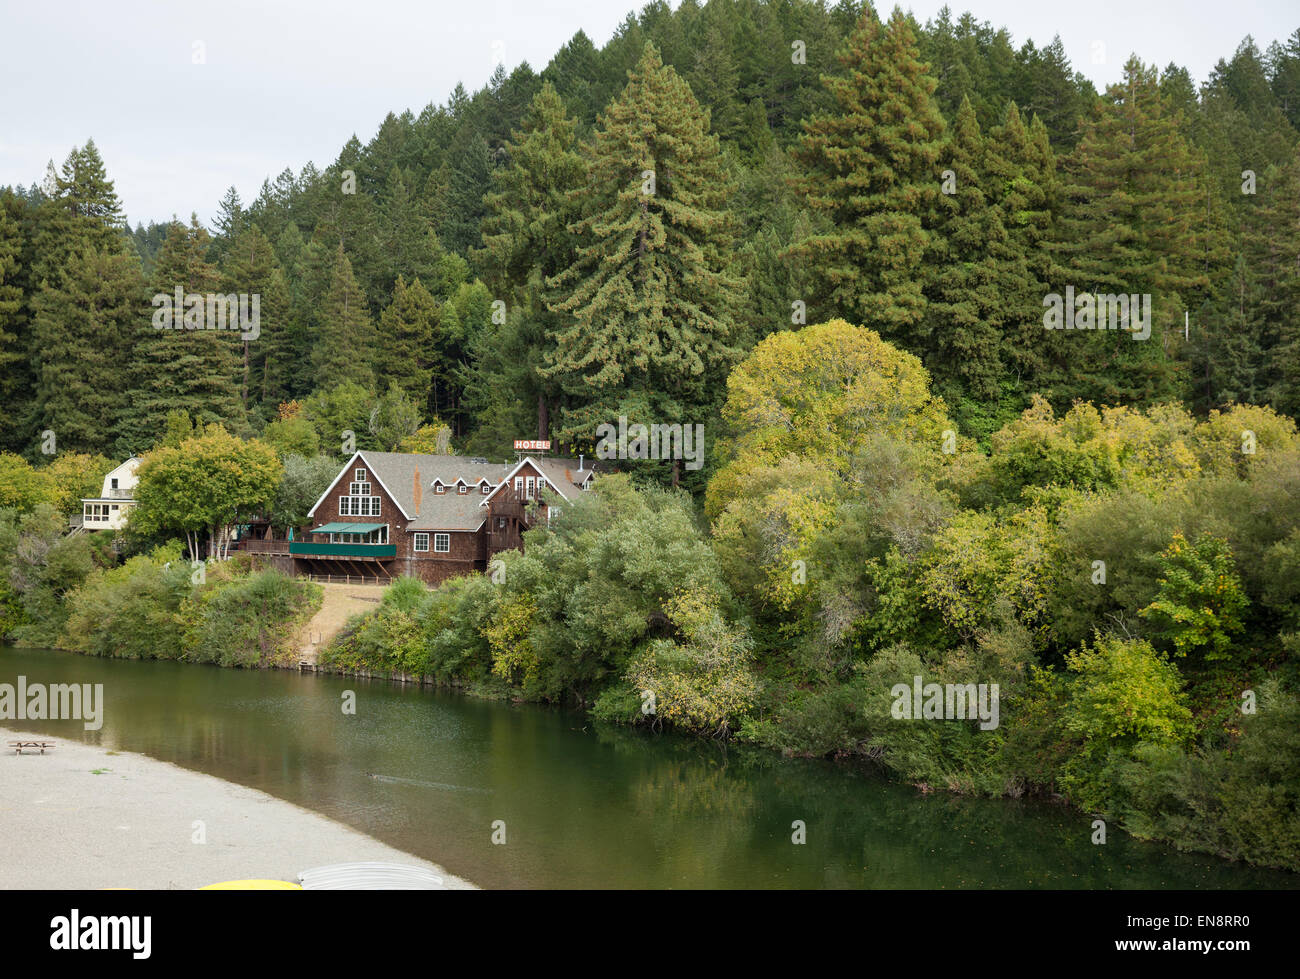 The Highland Dell Lodge on the Russian River in Monte Rio California. - Stock Image